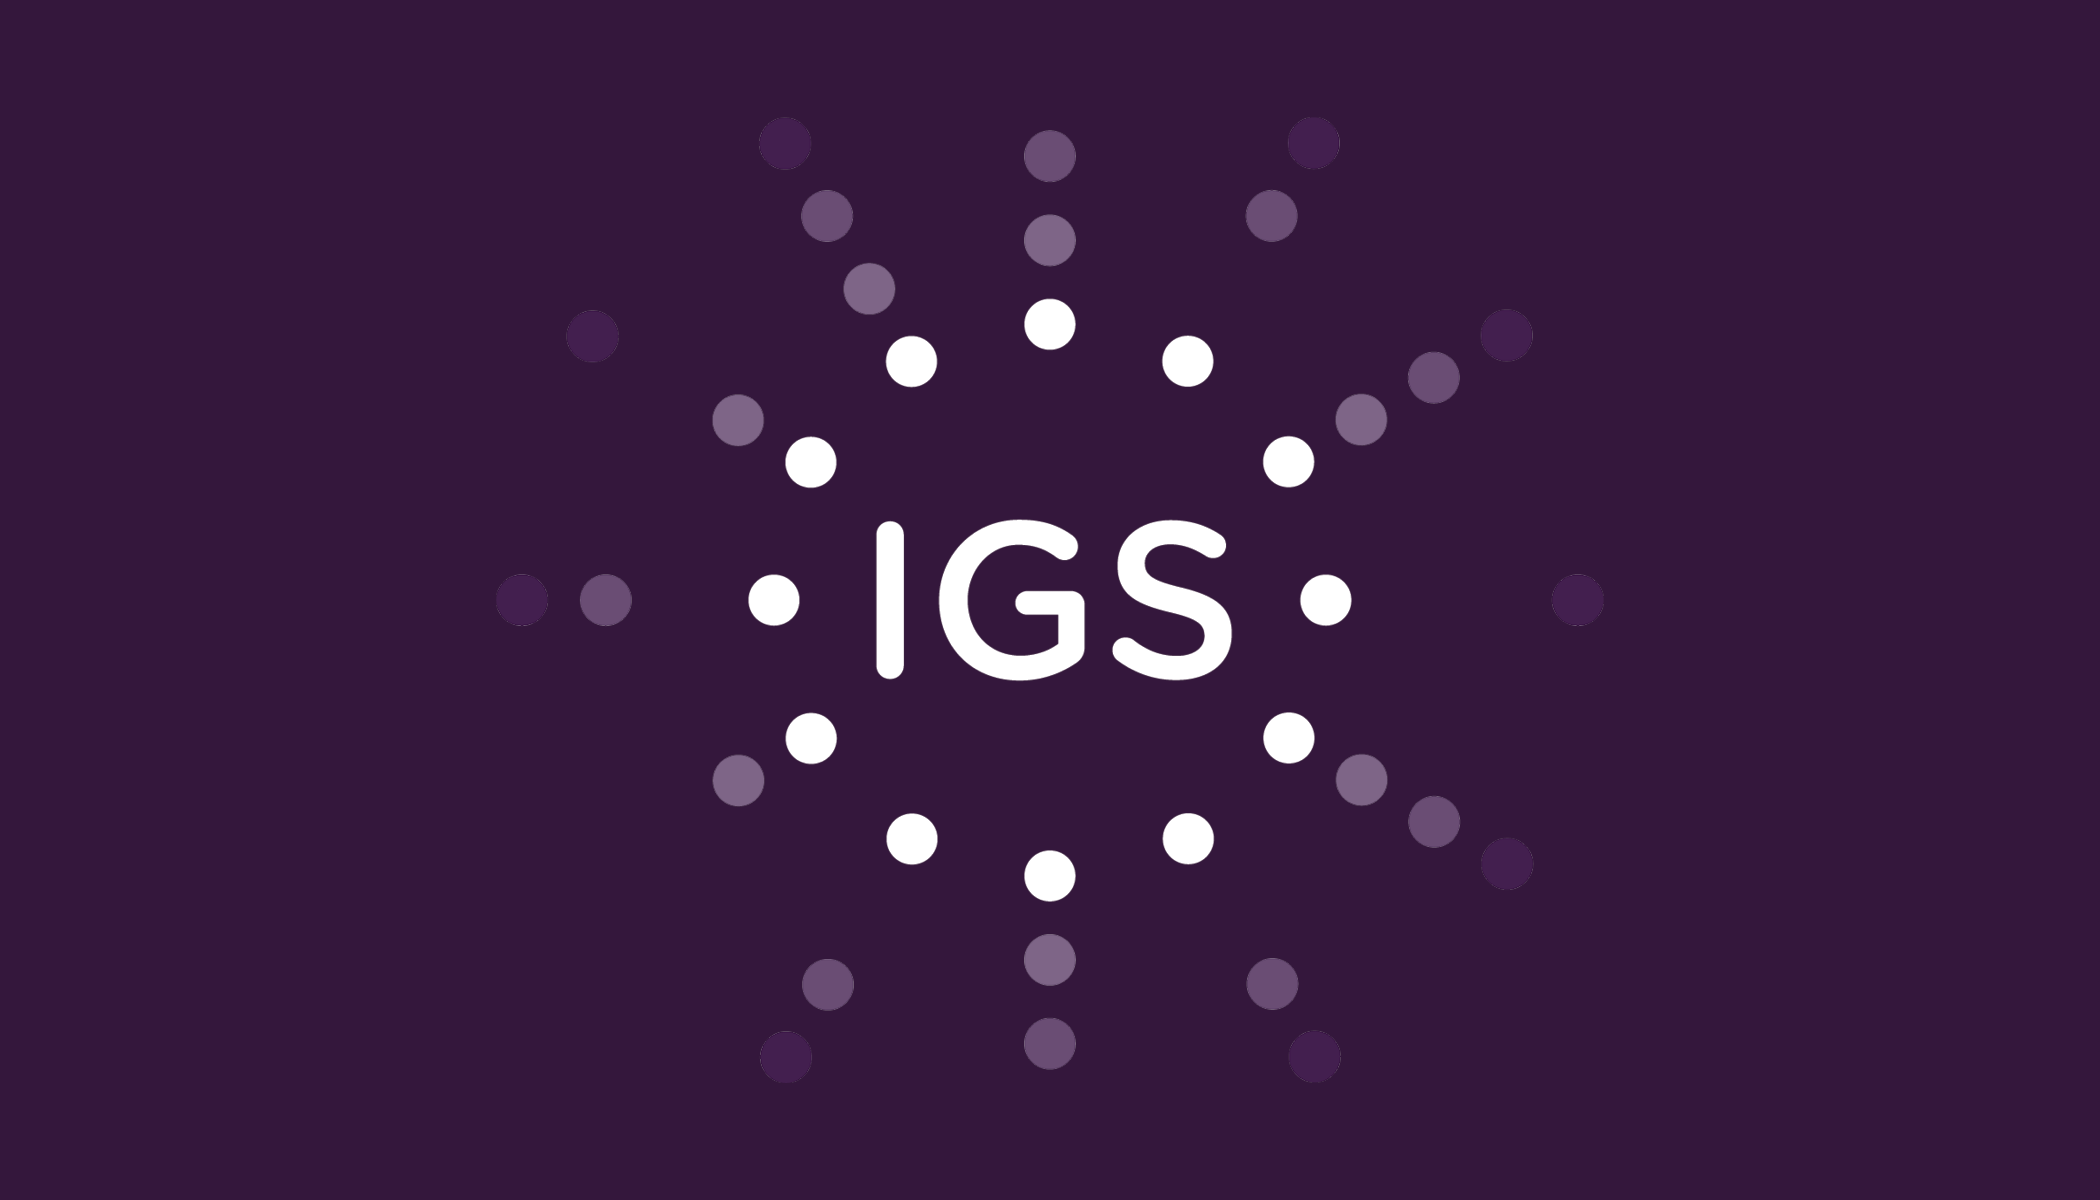 Recording: ES in Conversation with... IGS (Intelligent Growth Solutions)